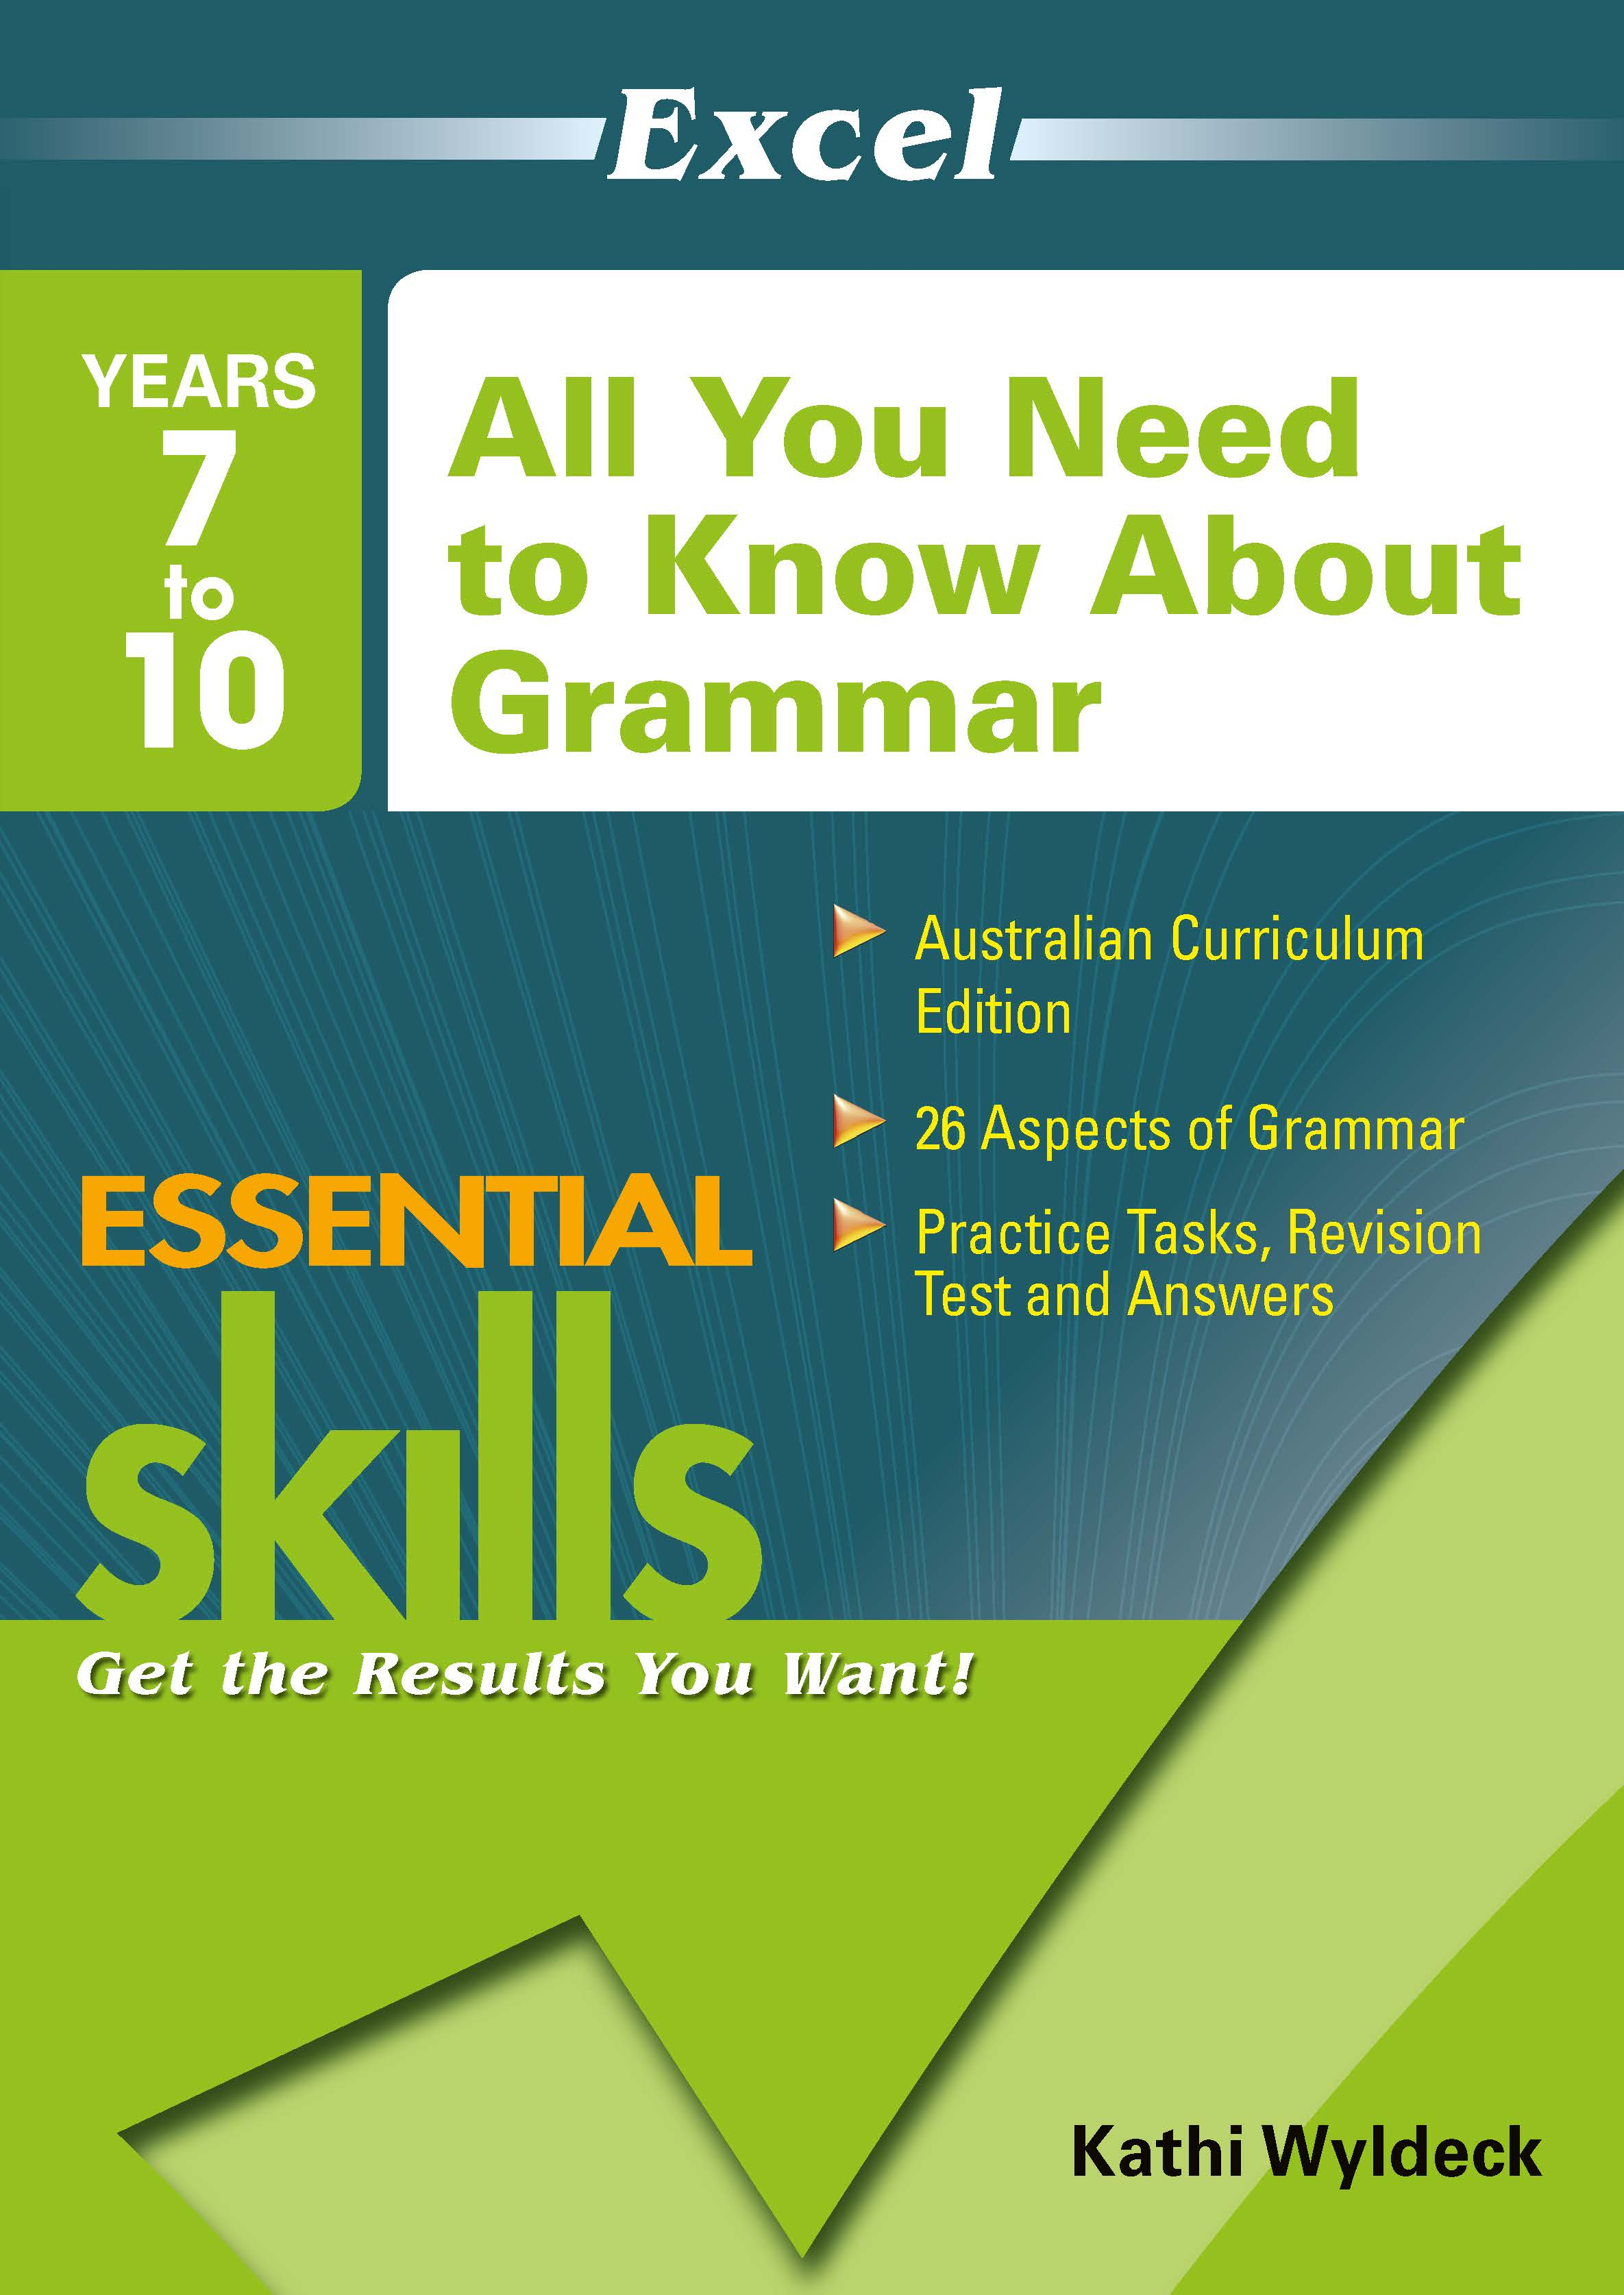 Excel Essential Skills Workbook: All You Need to Know About Grammar Years 7-10